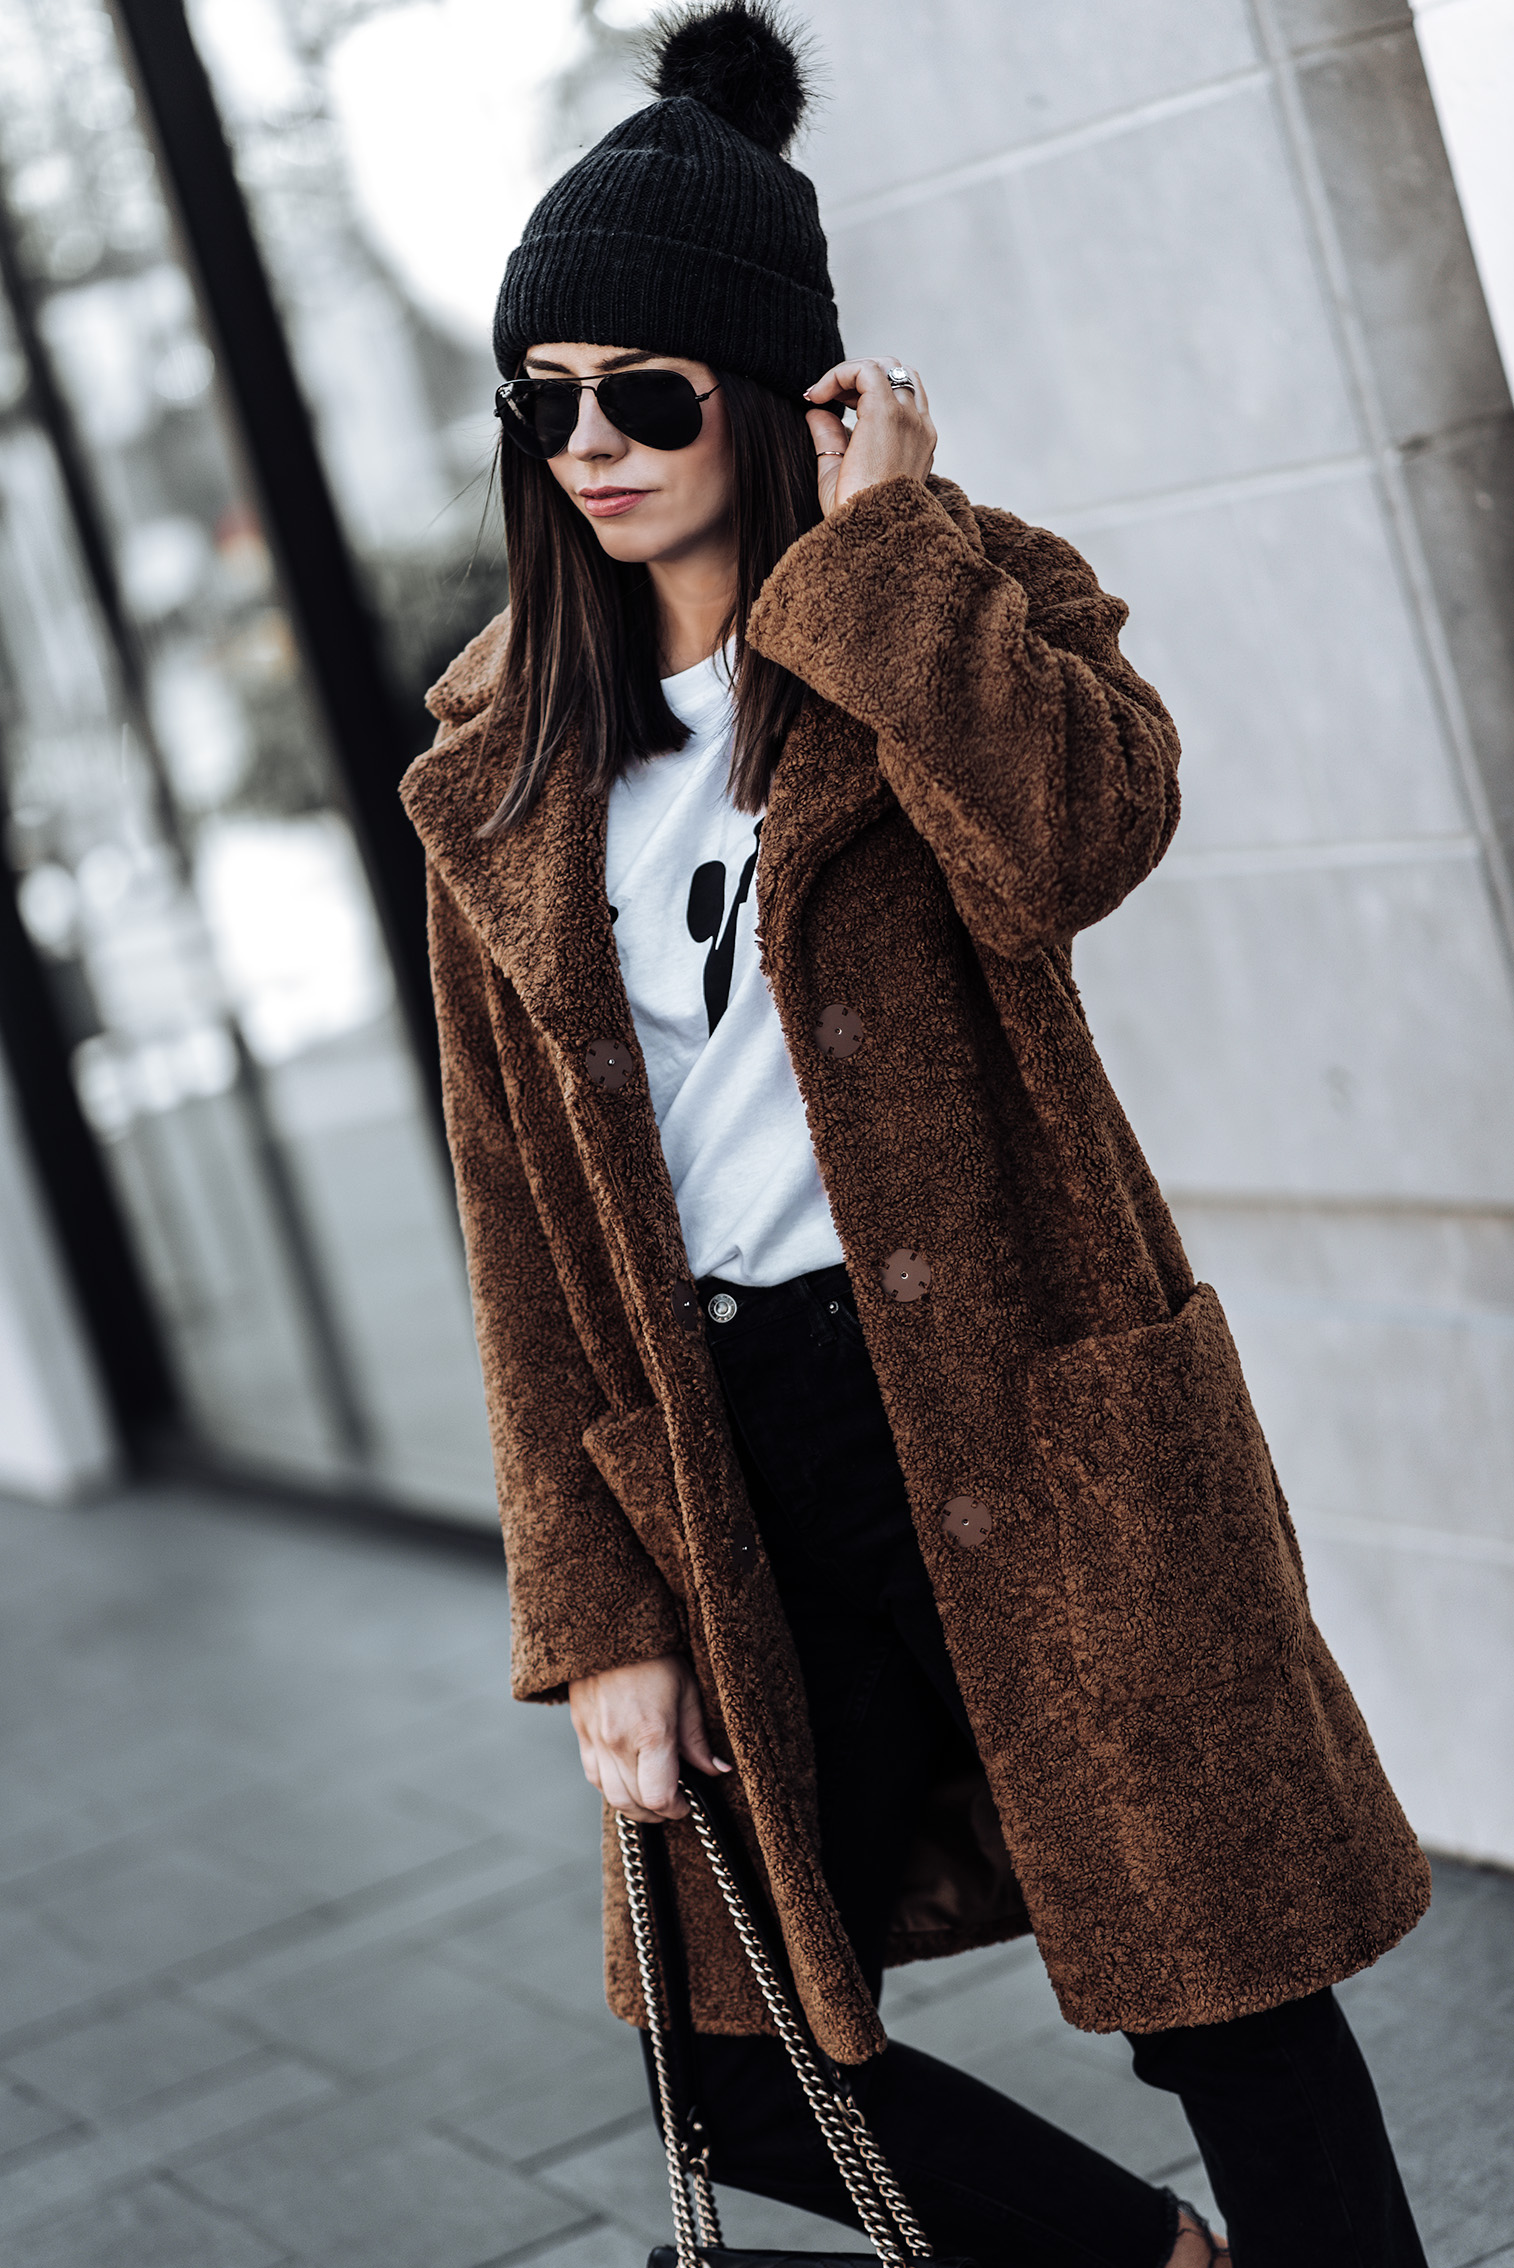 Click to shop the exact look! Teddy Coat (from ASOS, identical here)   Black denim jeans   Les Girls Les Boys Tee   Old Skool Vans   #teddycoatoutfits #winteroutfits #fallfashionoutfits #beanieoutfits